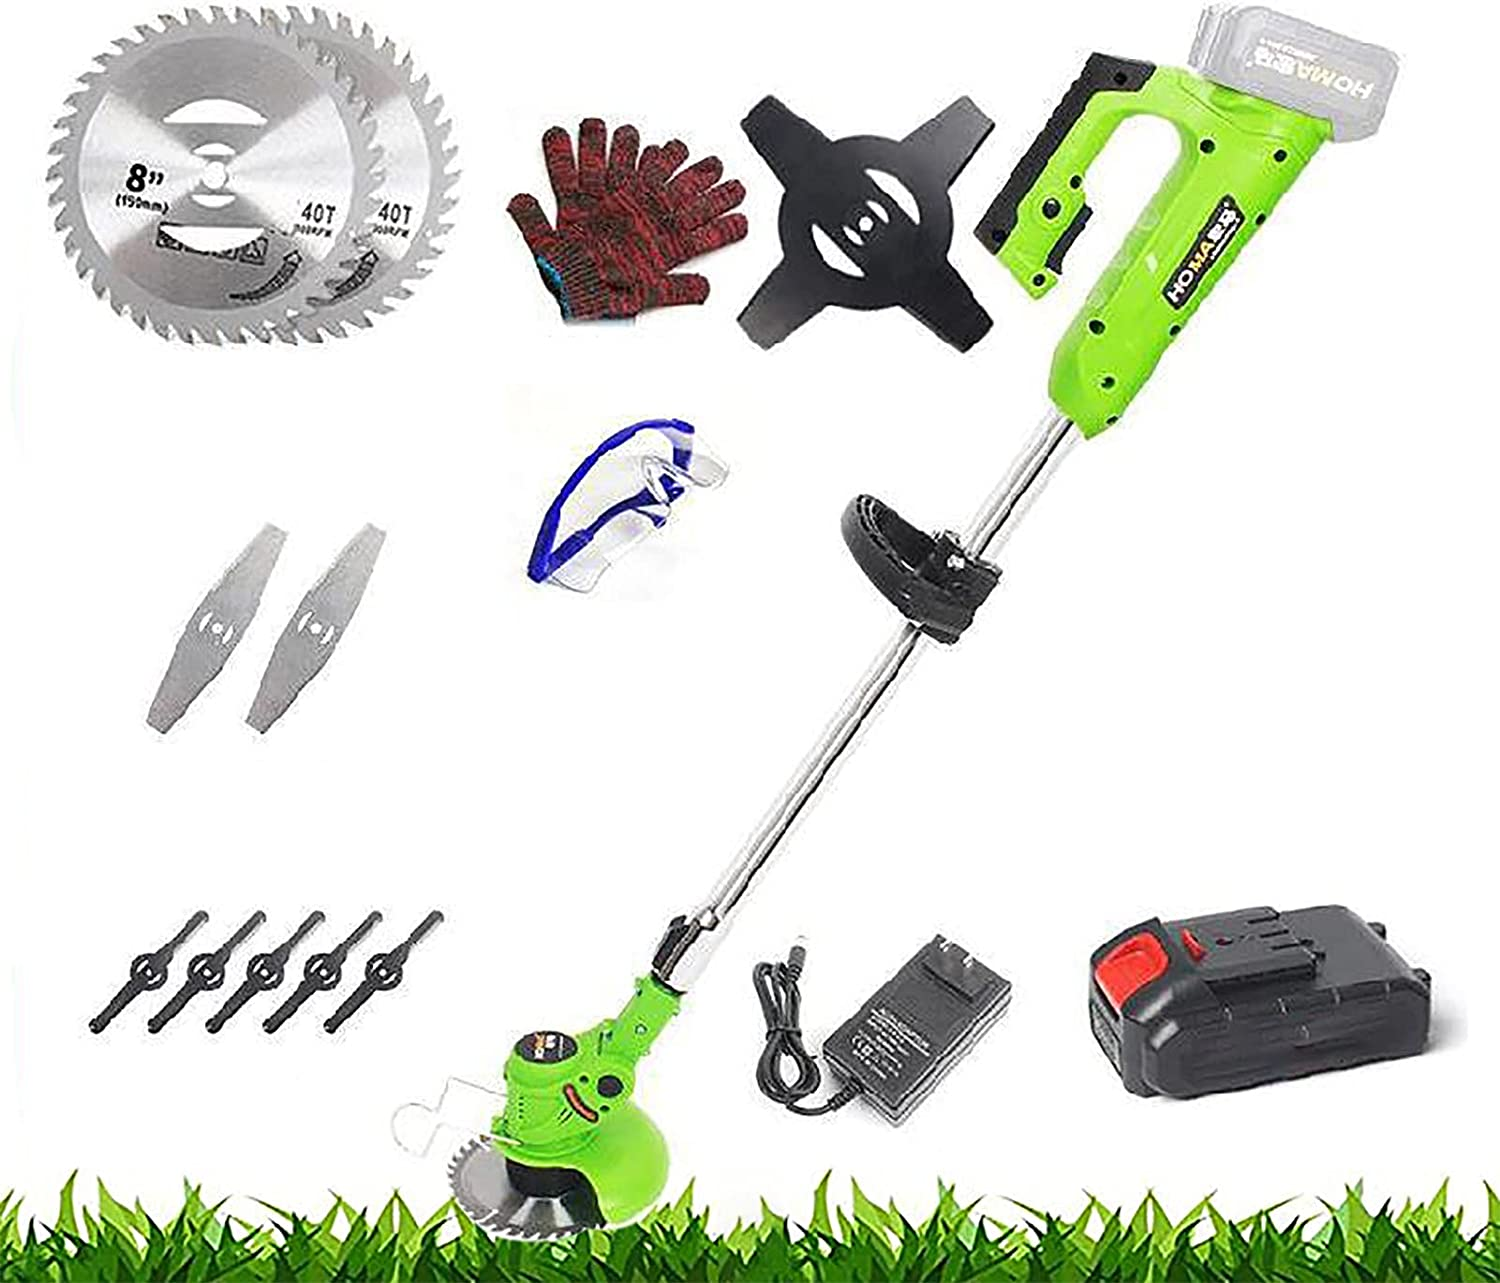 FFSH Cordless Lawn Trimmer Cutting Clearance SALE Limited time Easy 3cm Width Max 67% OFF to Use